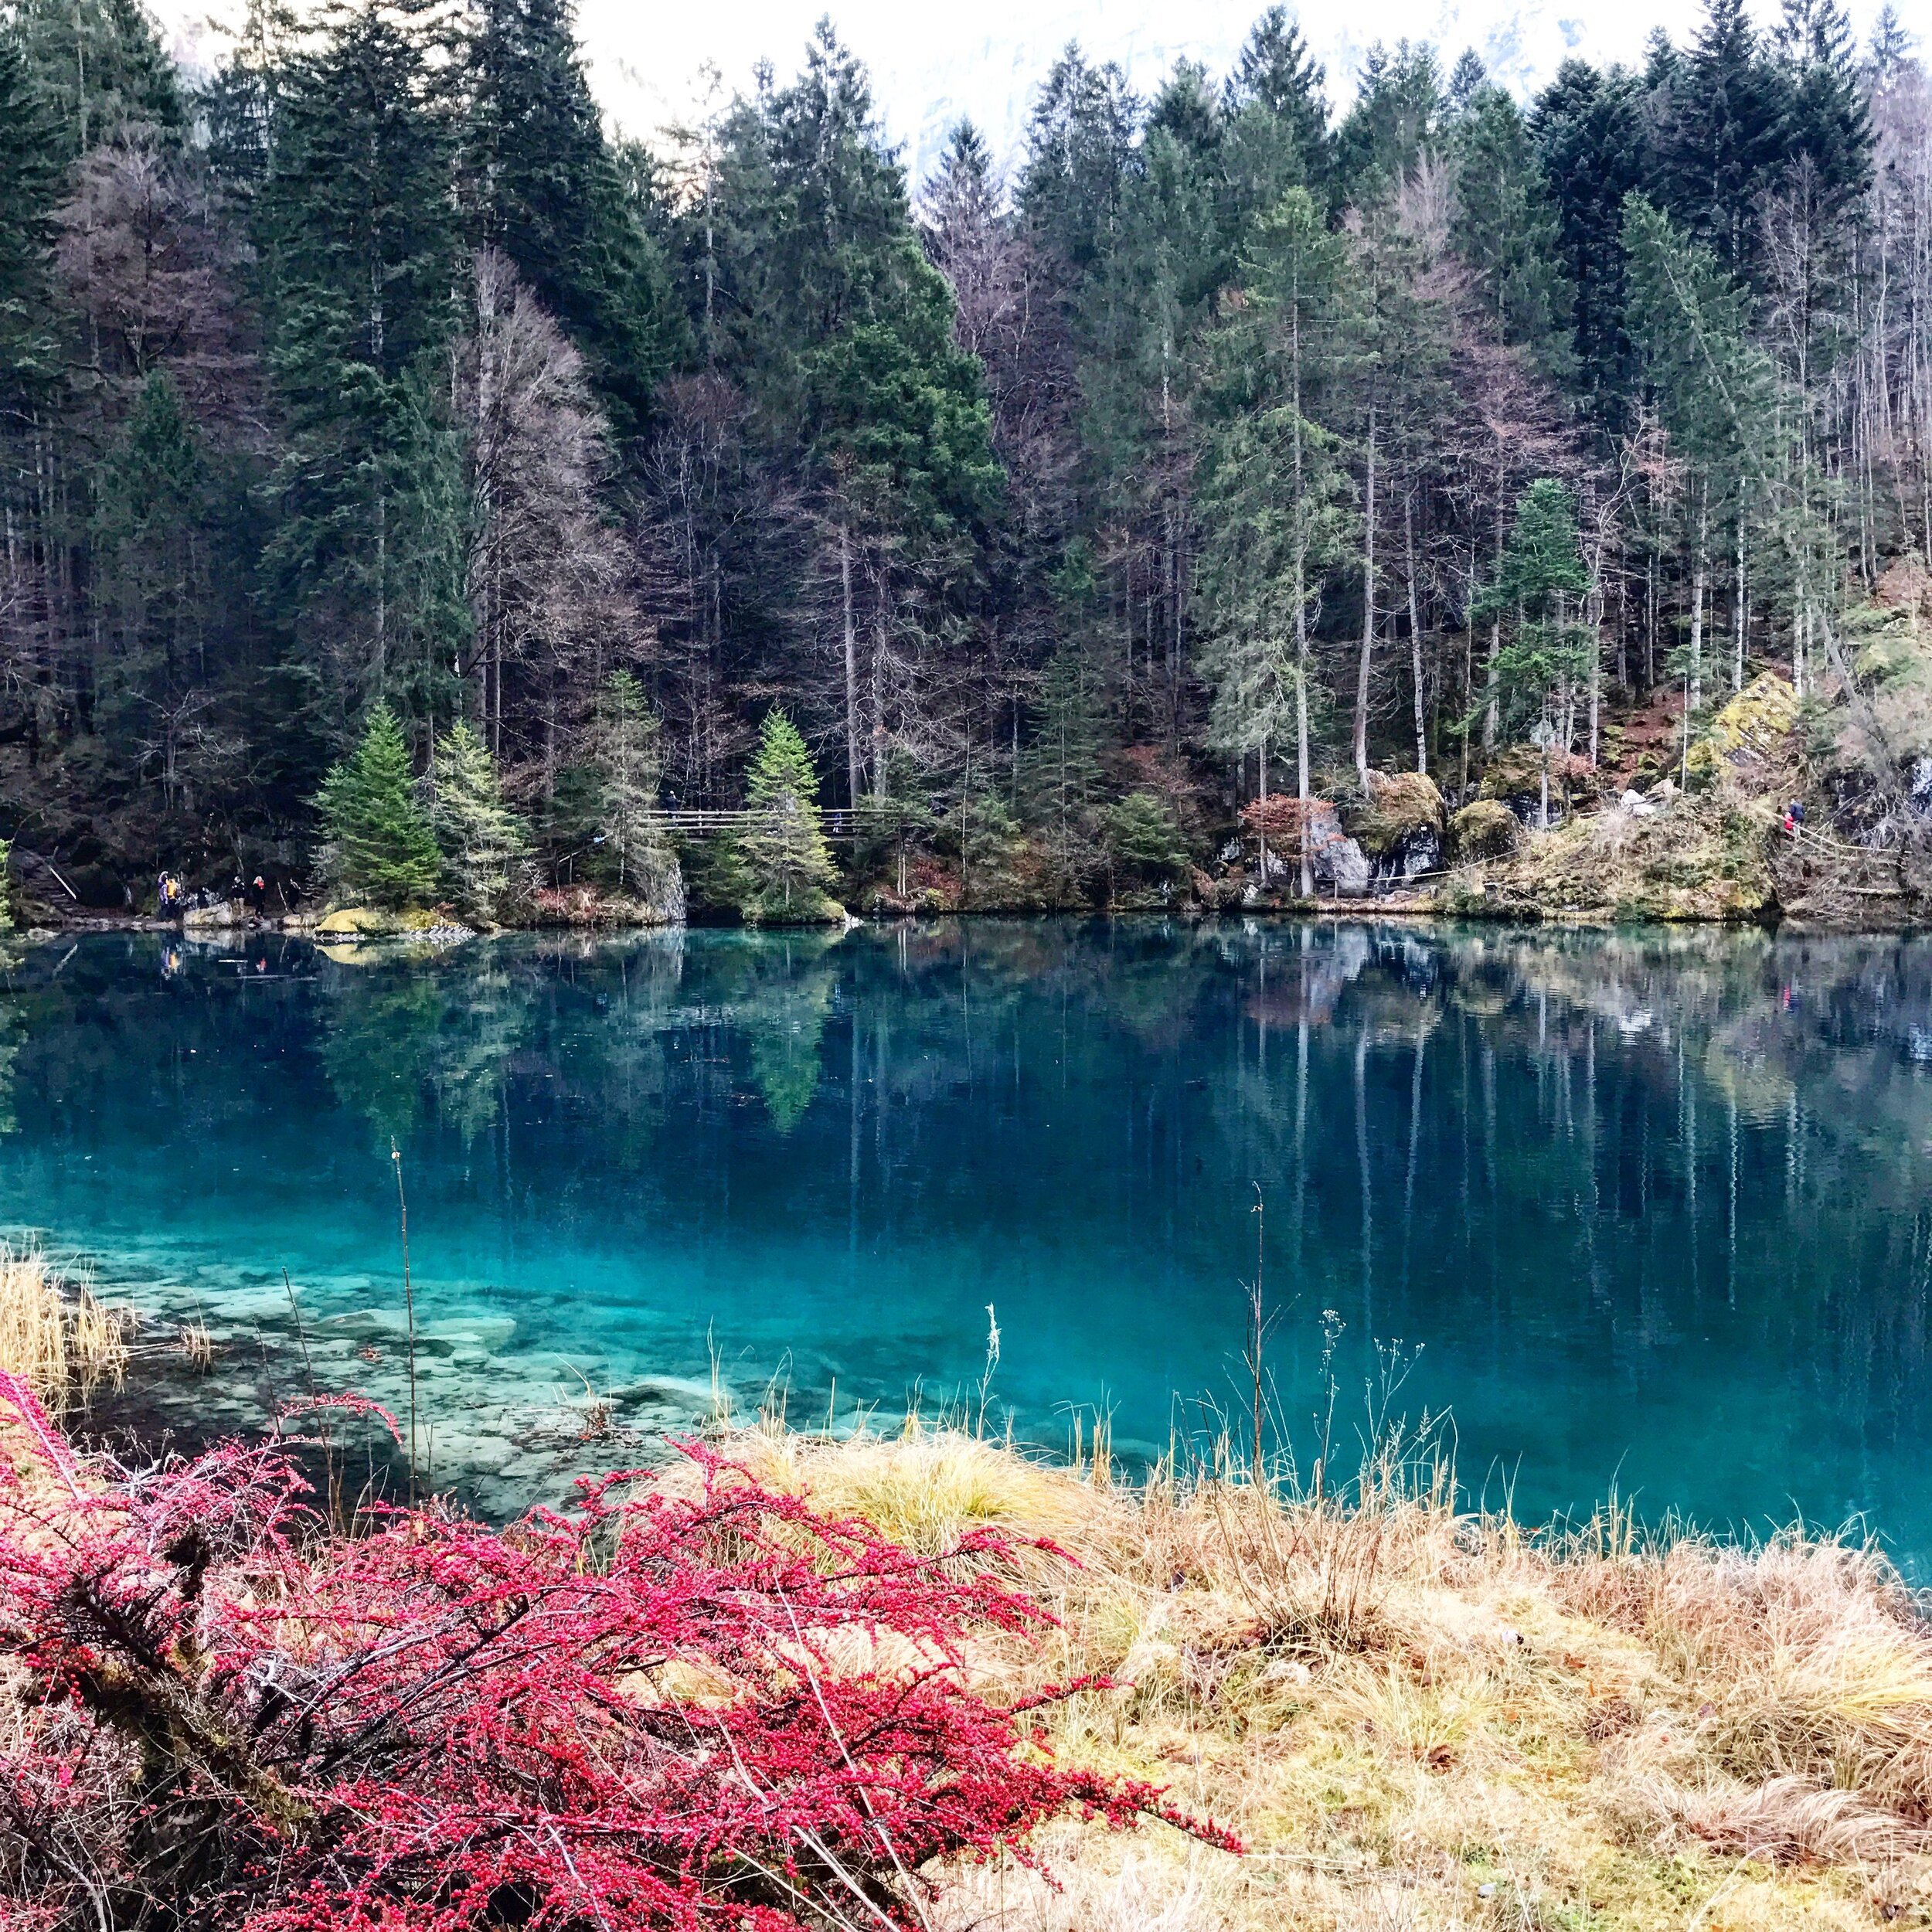 blausee - This mysterious blue lake transforms into a myriad of colours during the Autumn season - a beauty that is totally one of Switzerland's best kept secrets.